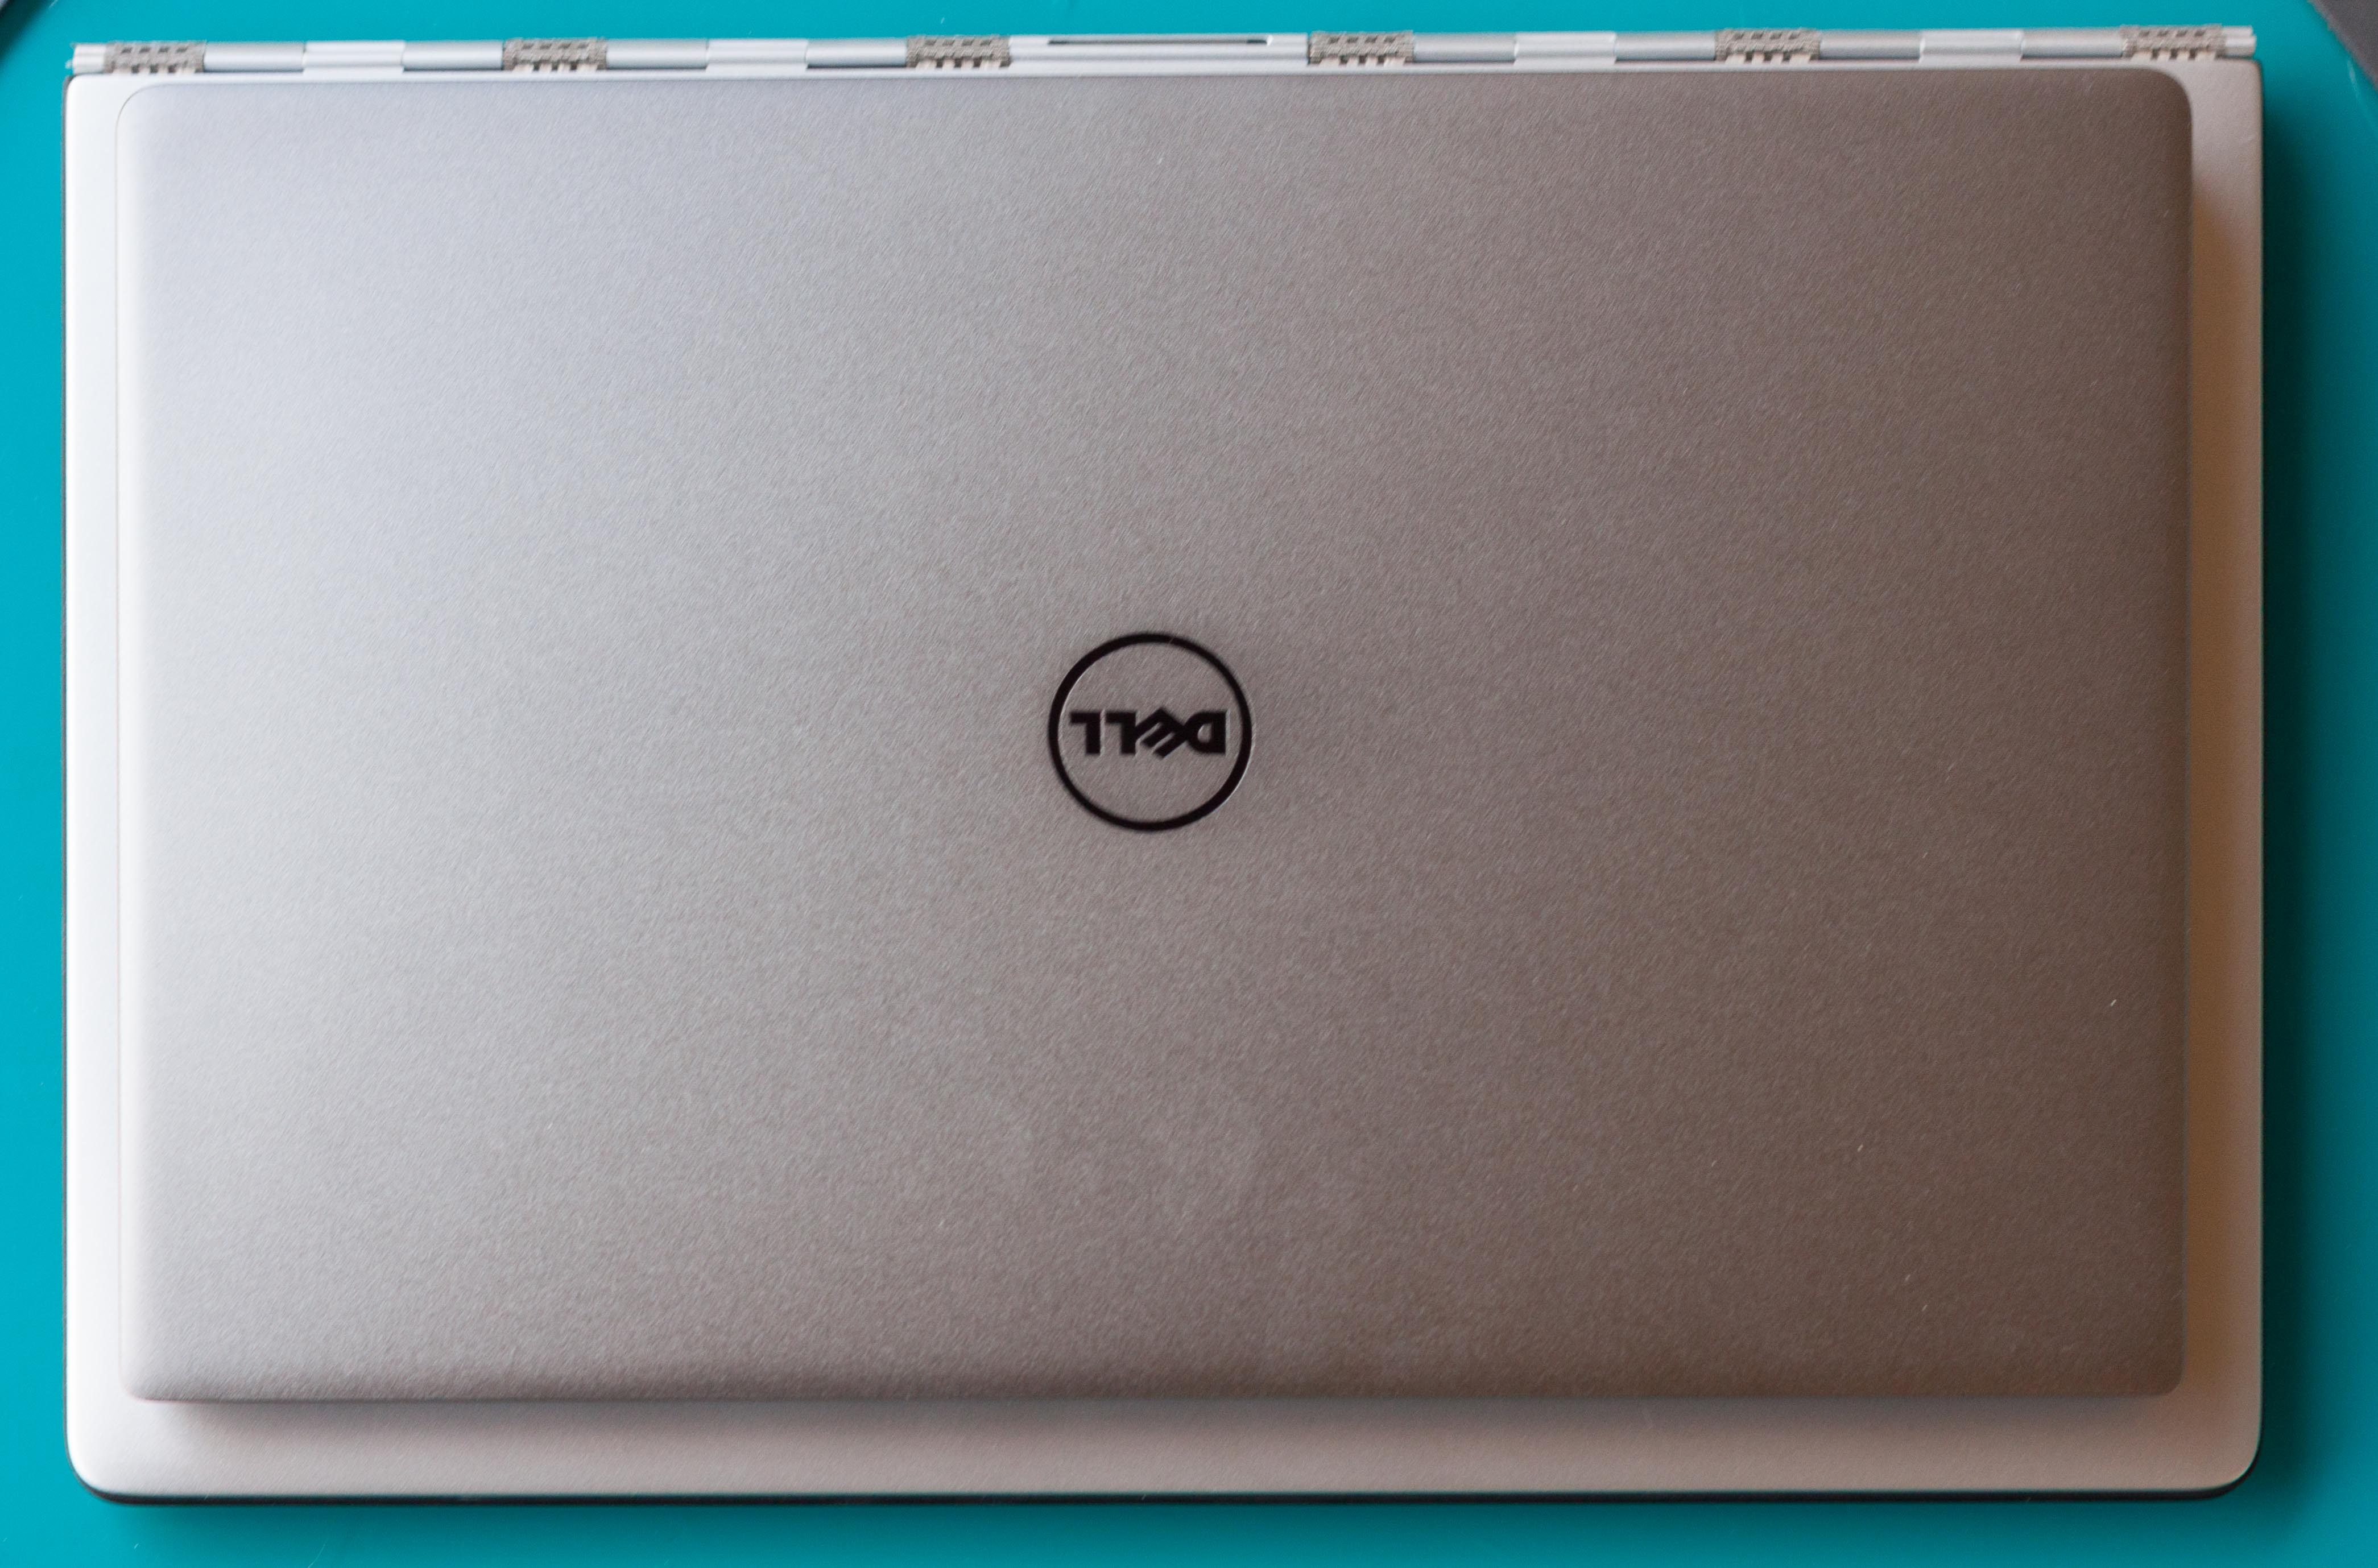 The XPS 13 resting atop the Yoga 3 Pro.